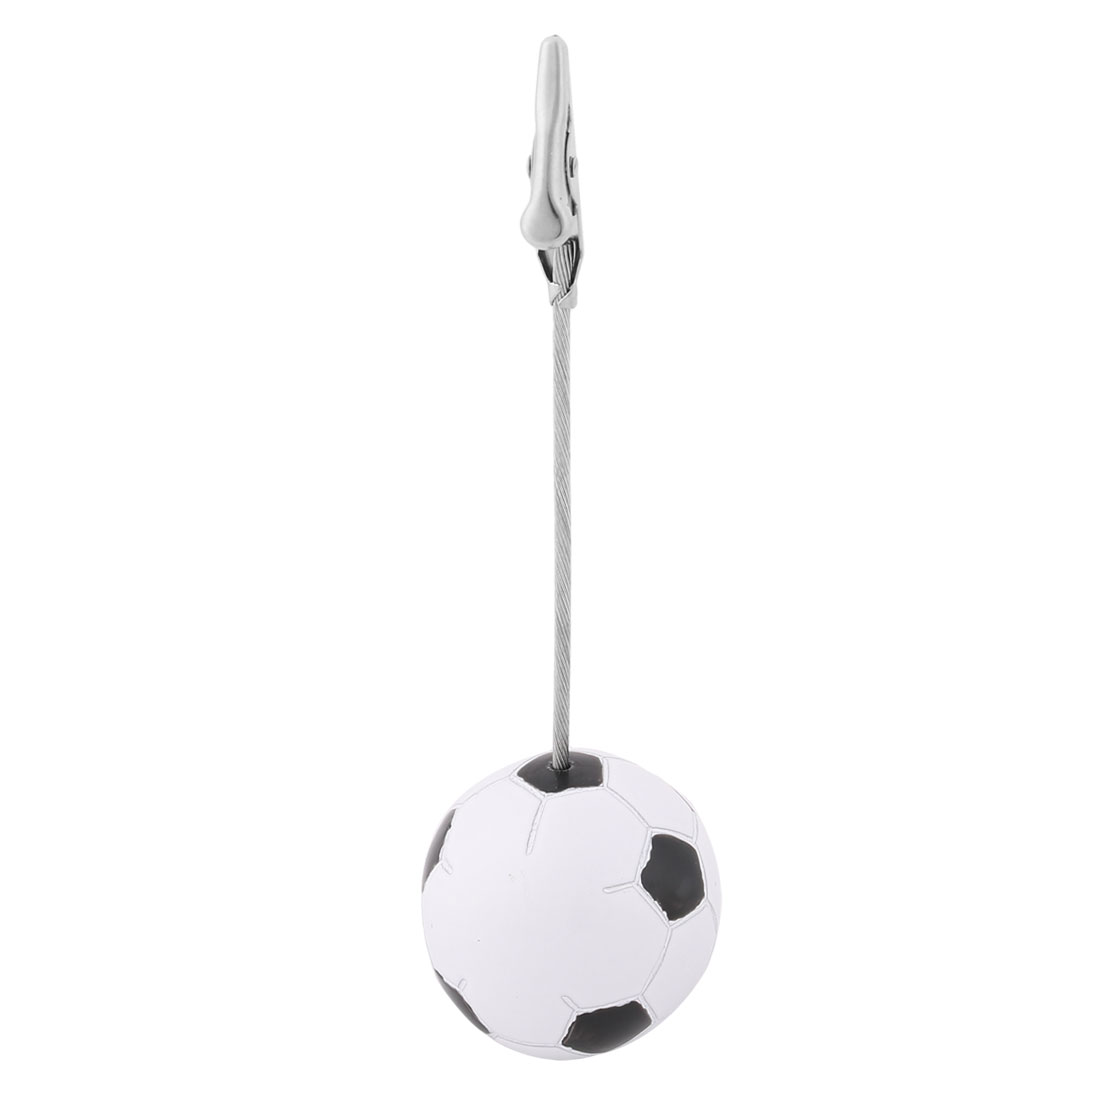 Office Football Shaped Base Alligator Design Clamp Note Photos Paper Memo Clip